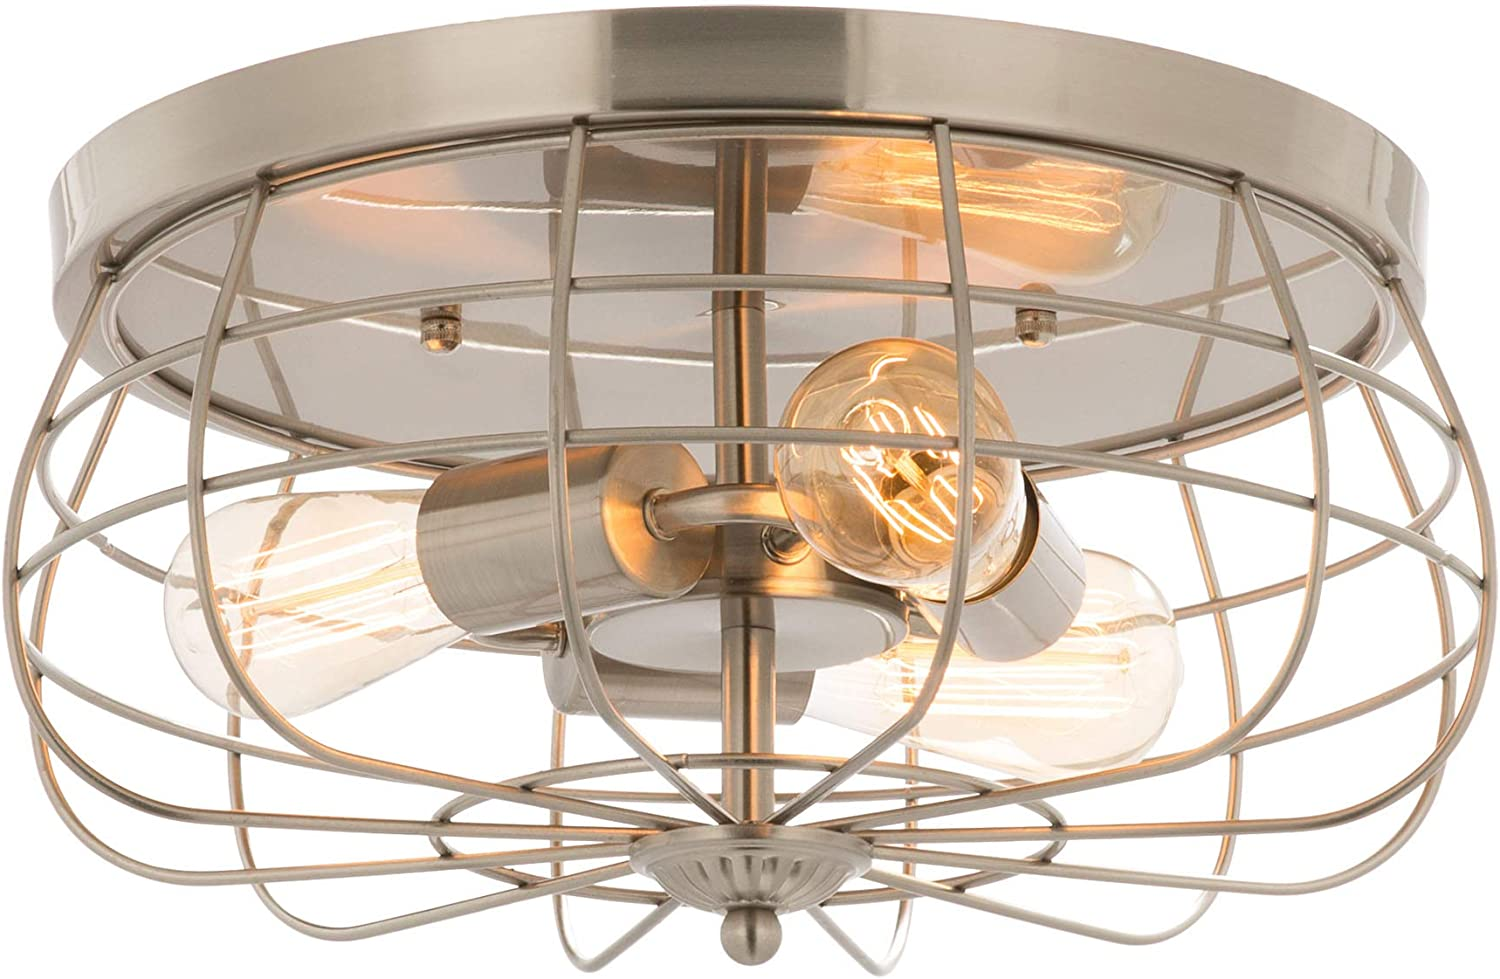 15 Inch Los Angeles Mall Metal Cage Brushed Nickel Light Mount Flush Fixt 35% OFF Ceiling